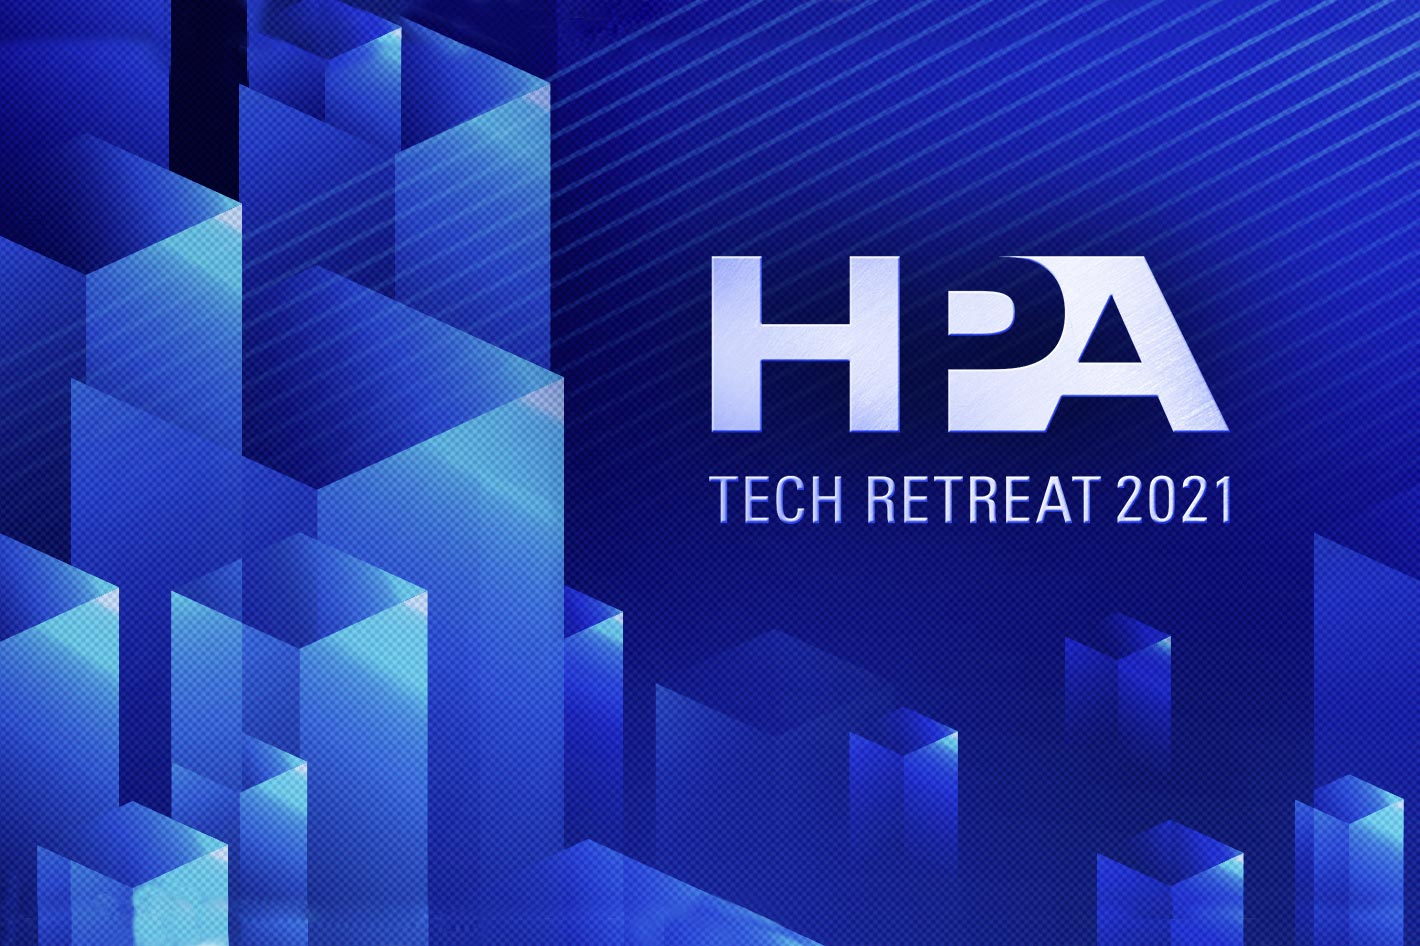 HPA Tech Retreat 2021 available globally as it moves online